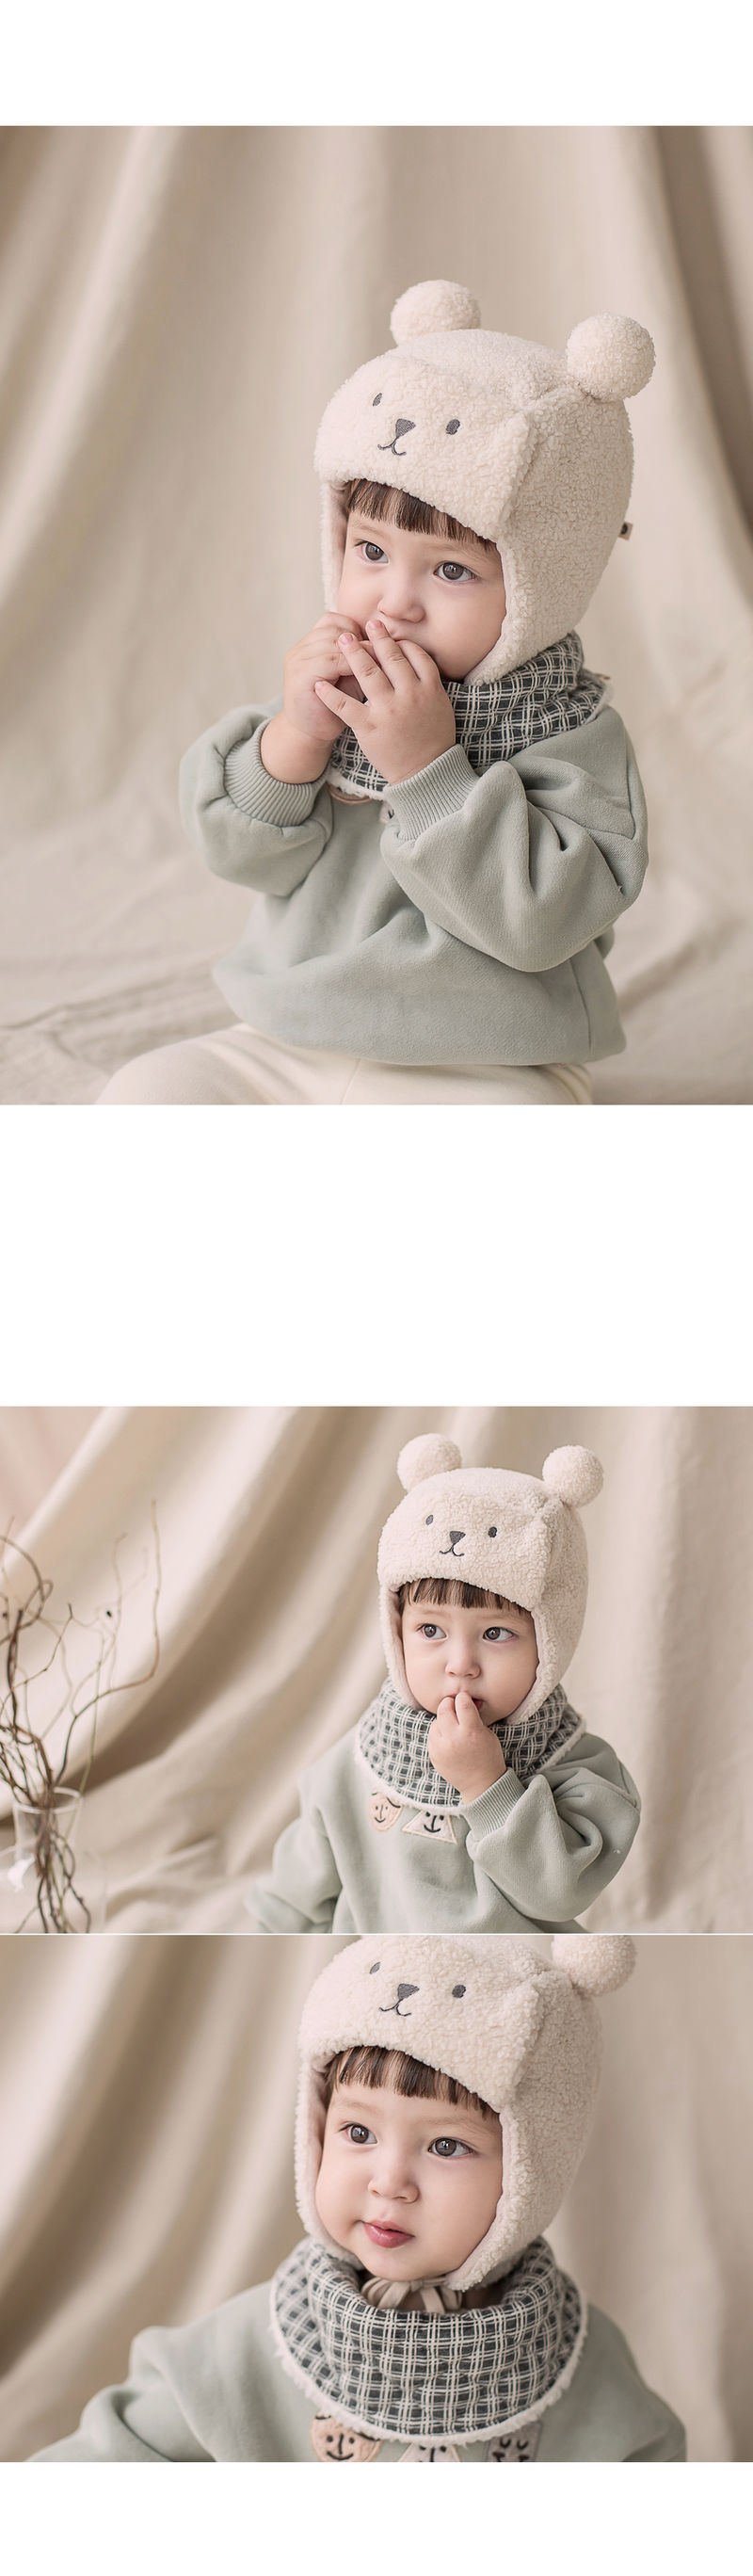 HAPPY PRINCE - Korean Children Fashion - #Kfashion4kids - Zeck Snow Banana Bib - 3